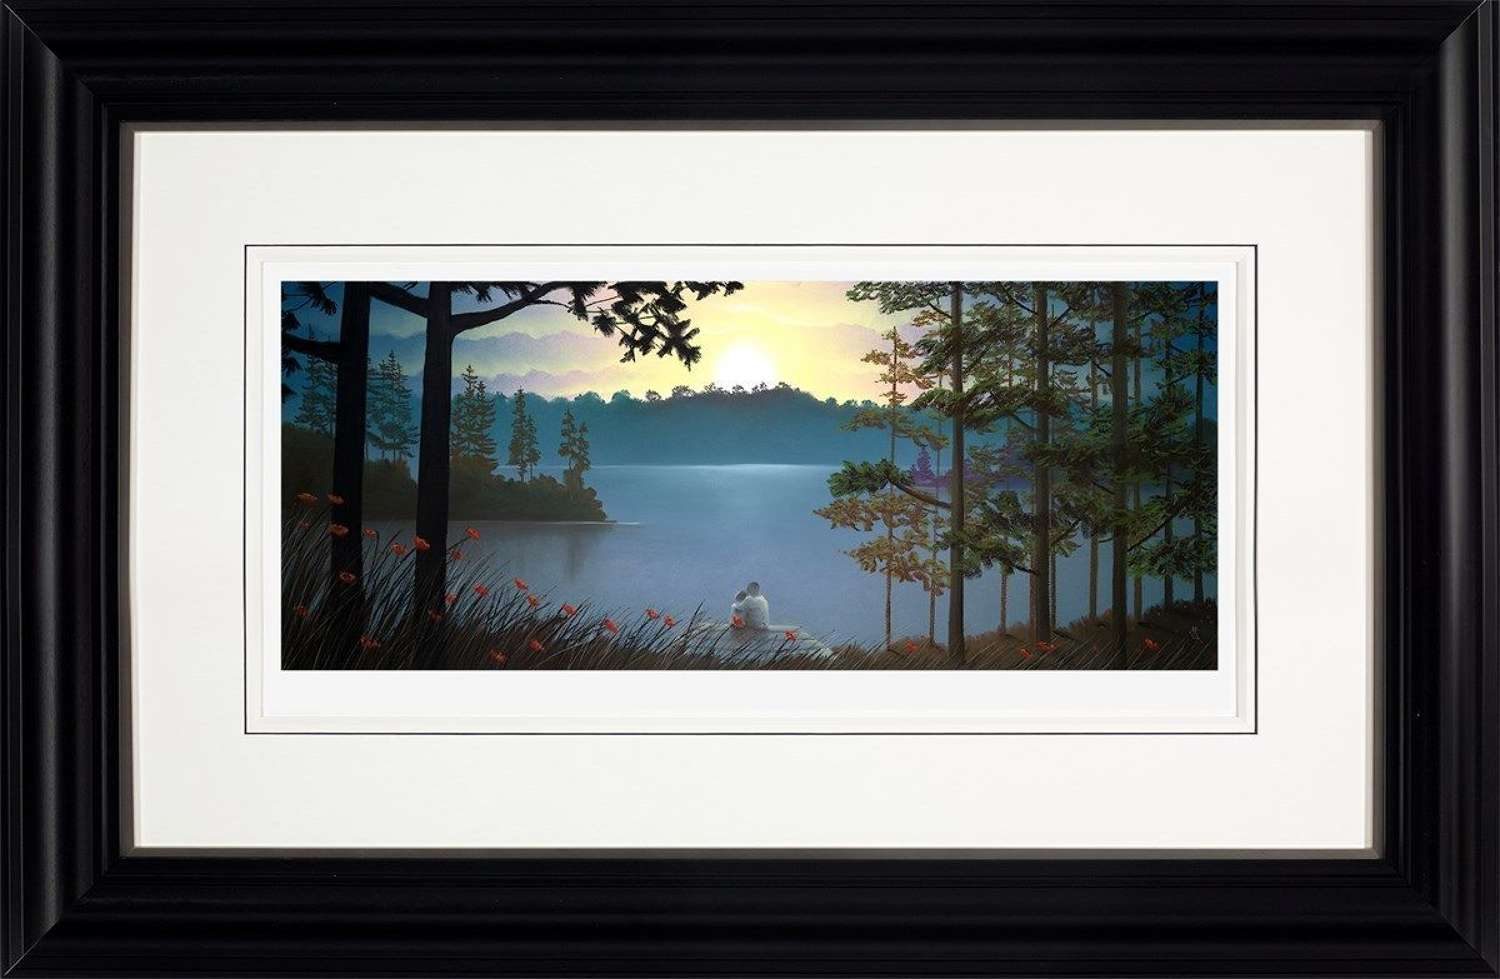 Just the Two of Us - Framed Art Print by Mackenzie Thorpe